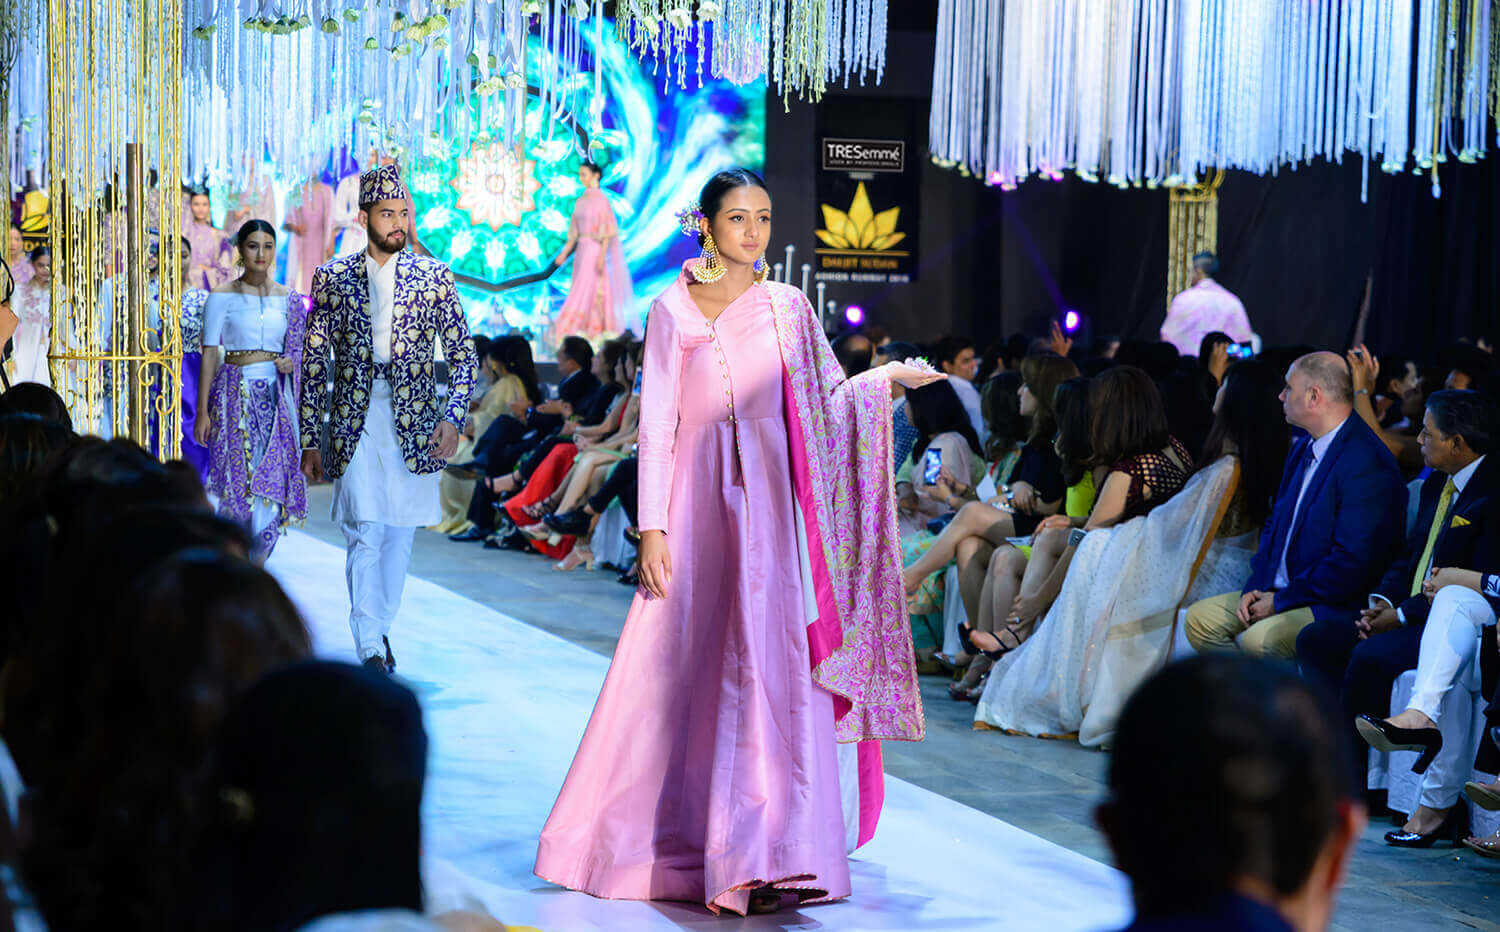 Models walk the ramp during the Daljit Sudan Fashion Runway 2018 held on Friday at Soaltee Crowne Plaza, Kathmandu. The event showcased Kashmiri embroidery with fabrics from Nepal, India, Italy and Japan in designer Daljit Kaur Sudan's latest collection inspired by saffron.